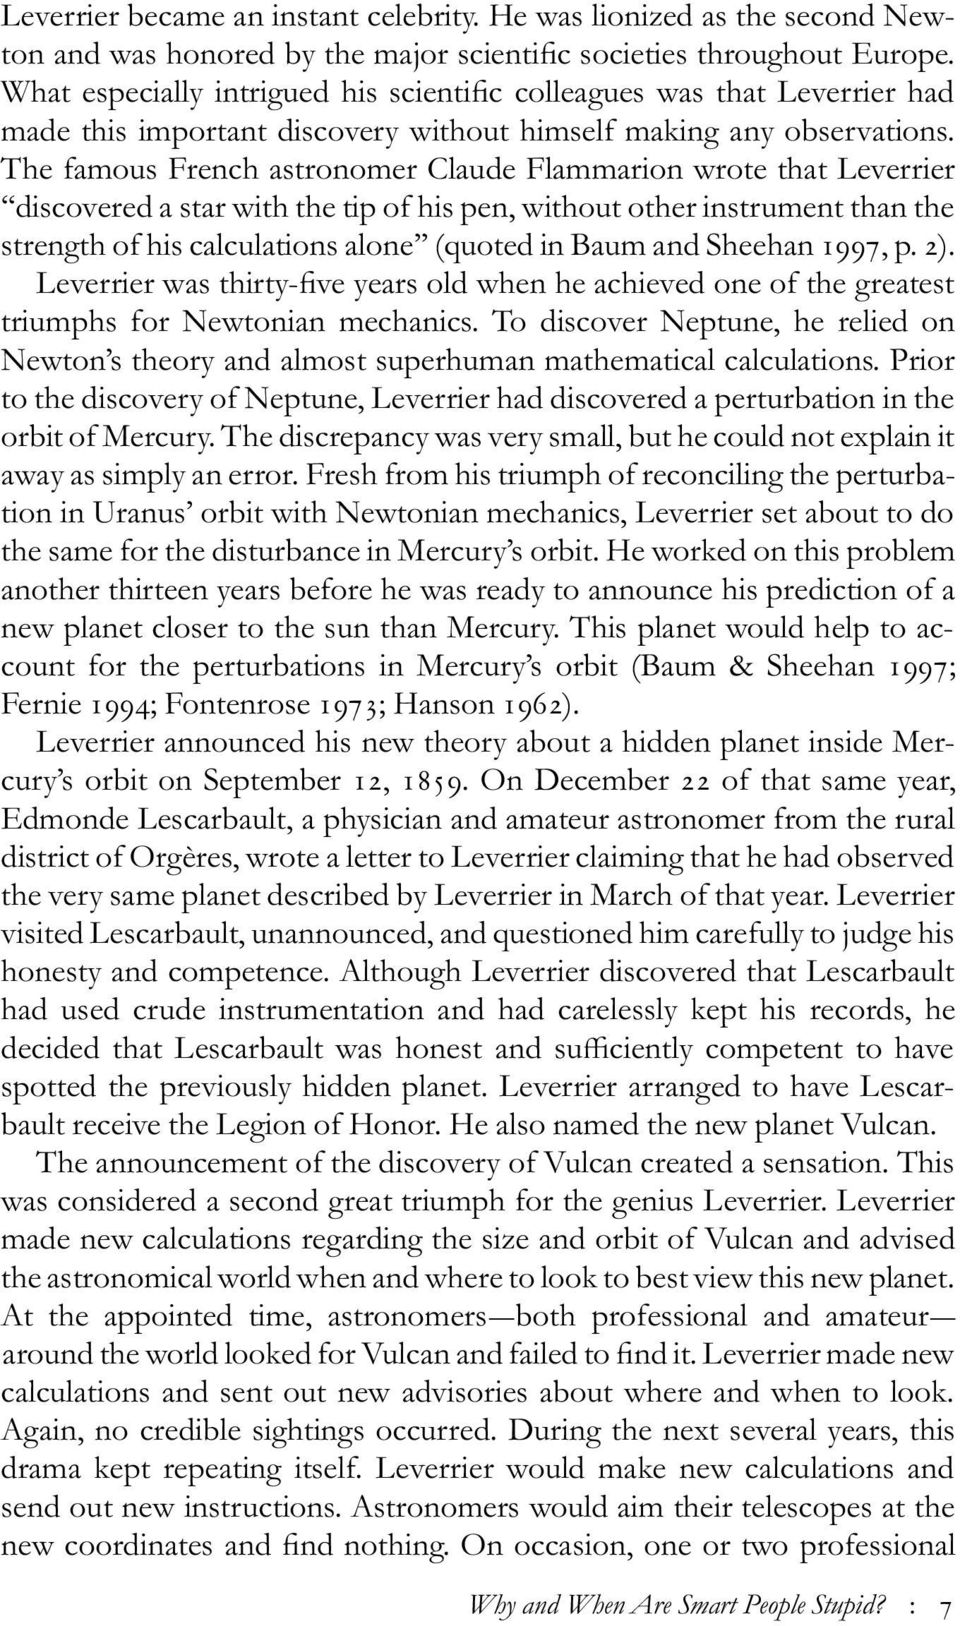 The famous French astronomer Claude Flammarion wrote that Leverrier discovered a star with the tip of his pen, without other instrument than the strength of his calculations alone (quoted in Baum and